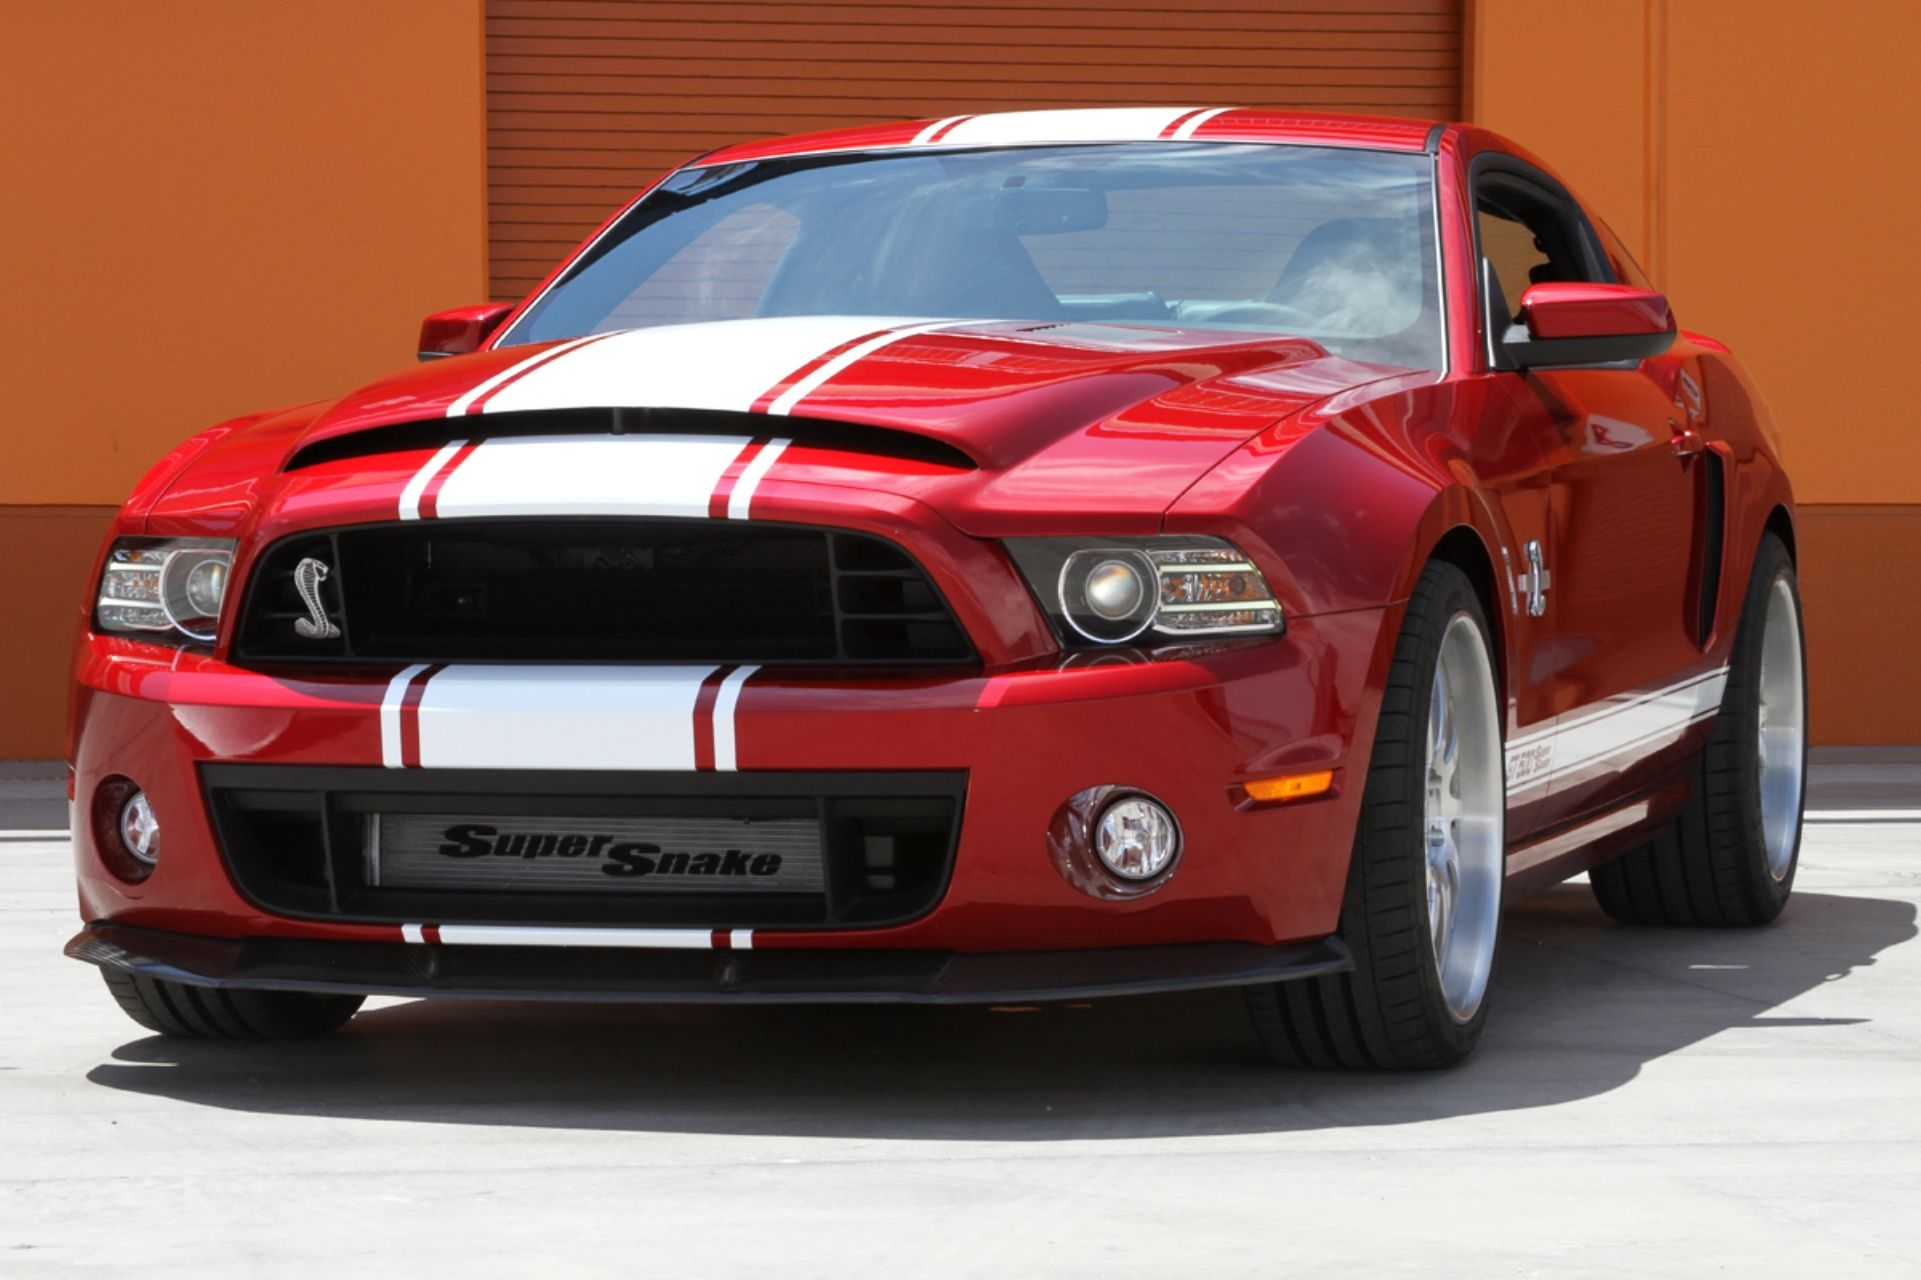 ford mustang shelby cobra gt500 super snake looking at these mustangs i want so badly it makes. Black Bedroom Furniture Sets. Home Design Ideas